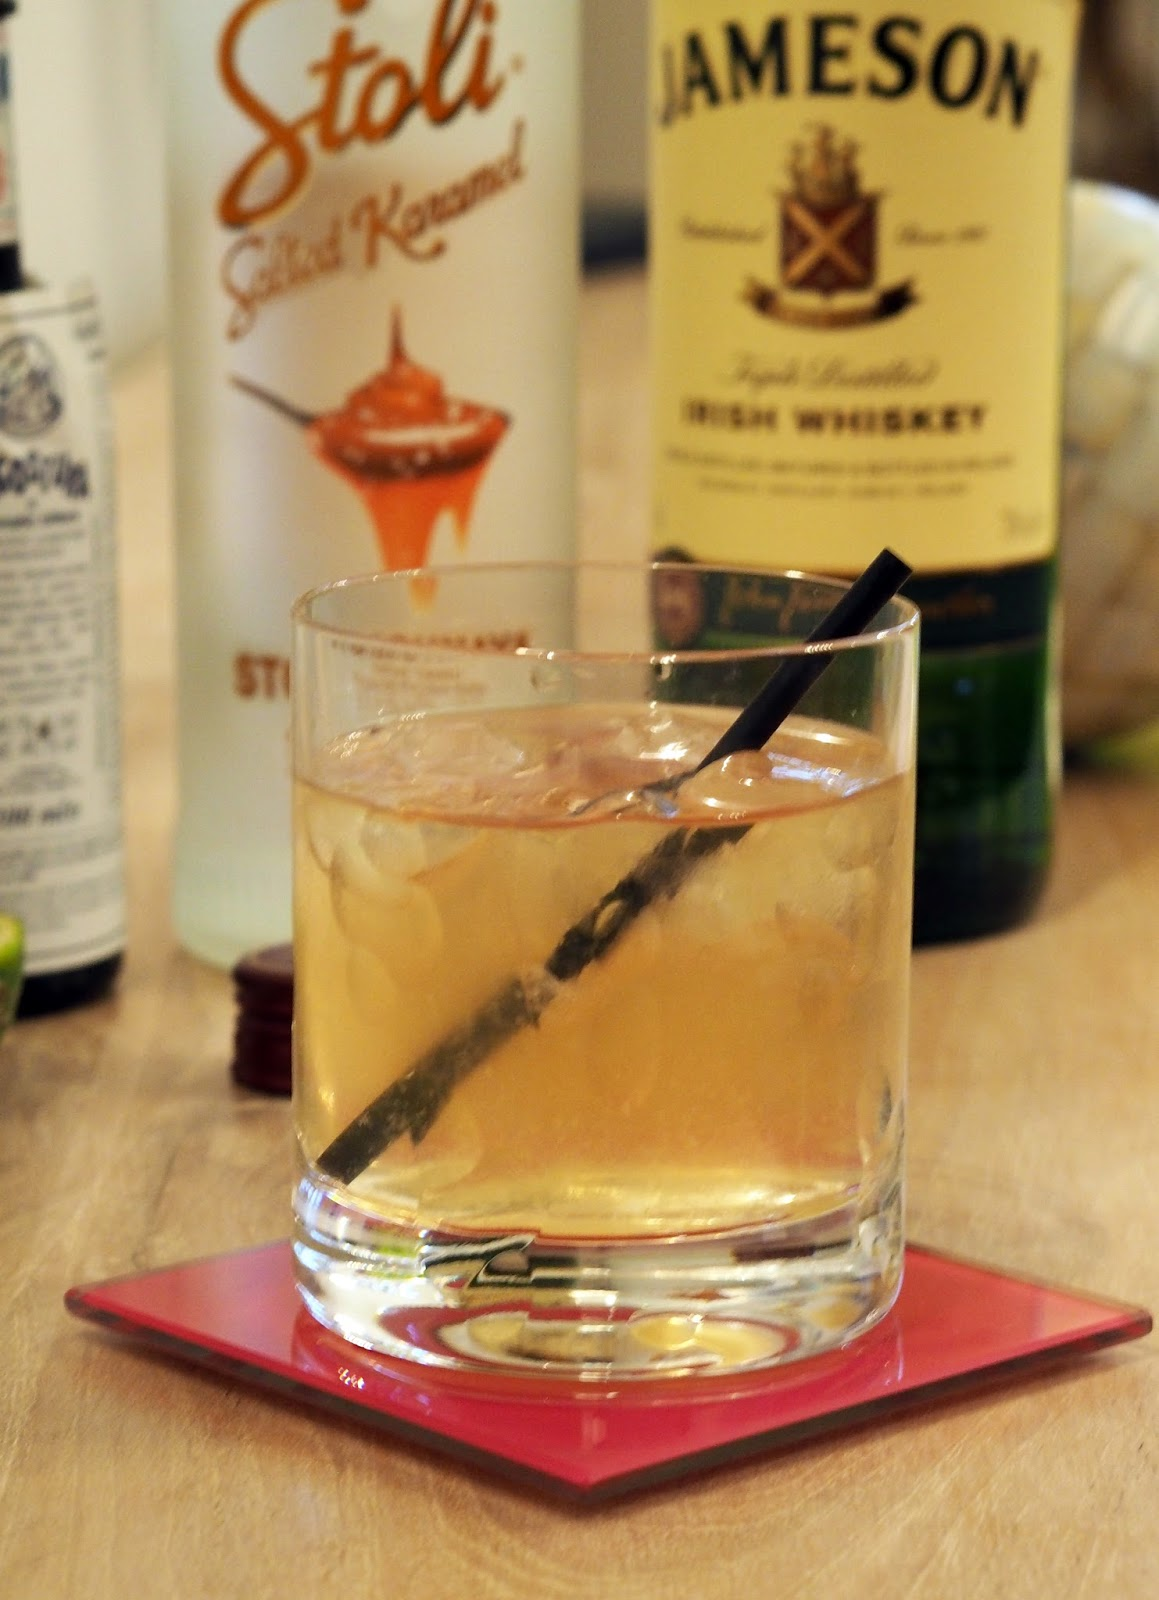 Elle bloggs by lauren barry jameson salted caramel mule for Jameson mixed drinks recipes